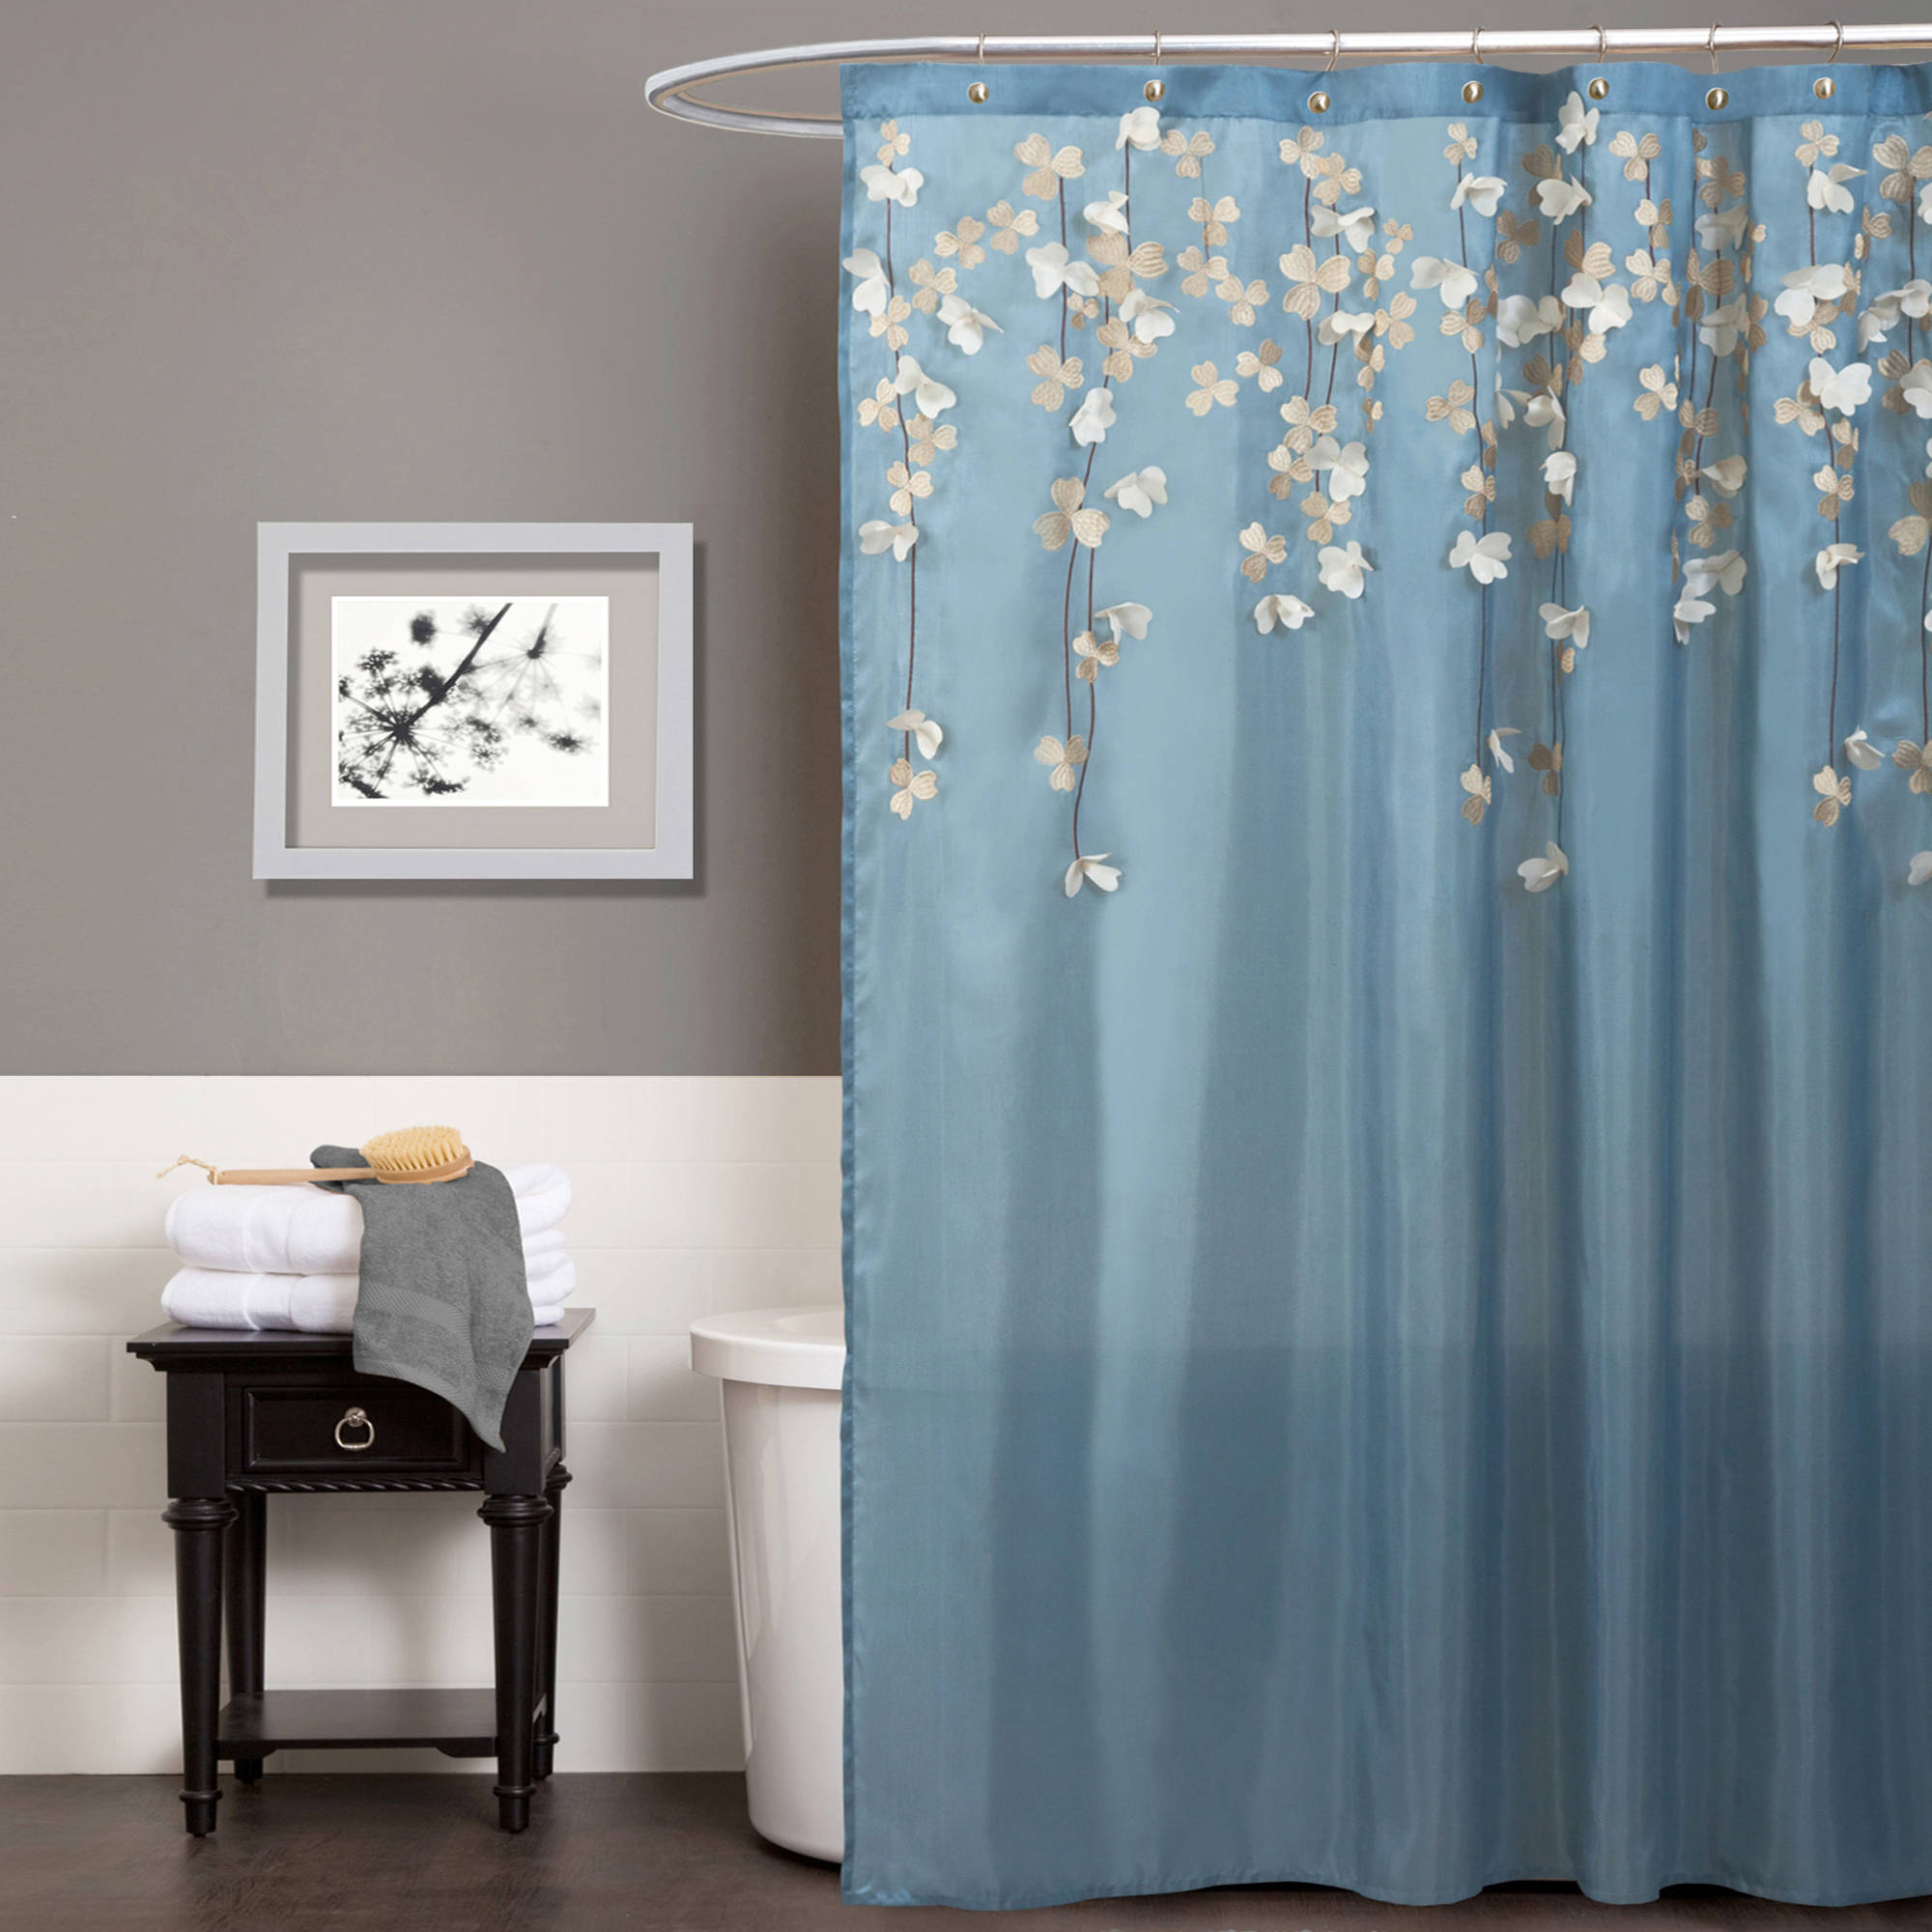 Shower Curtains Walmart Throughout Proportions 2000 X